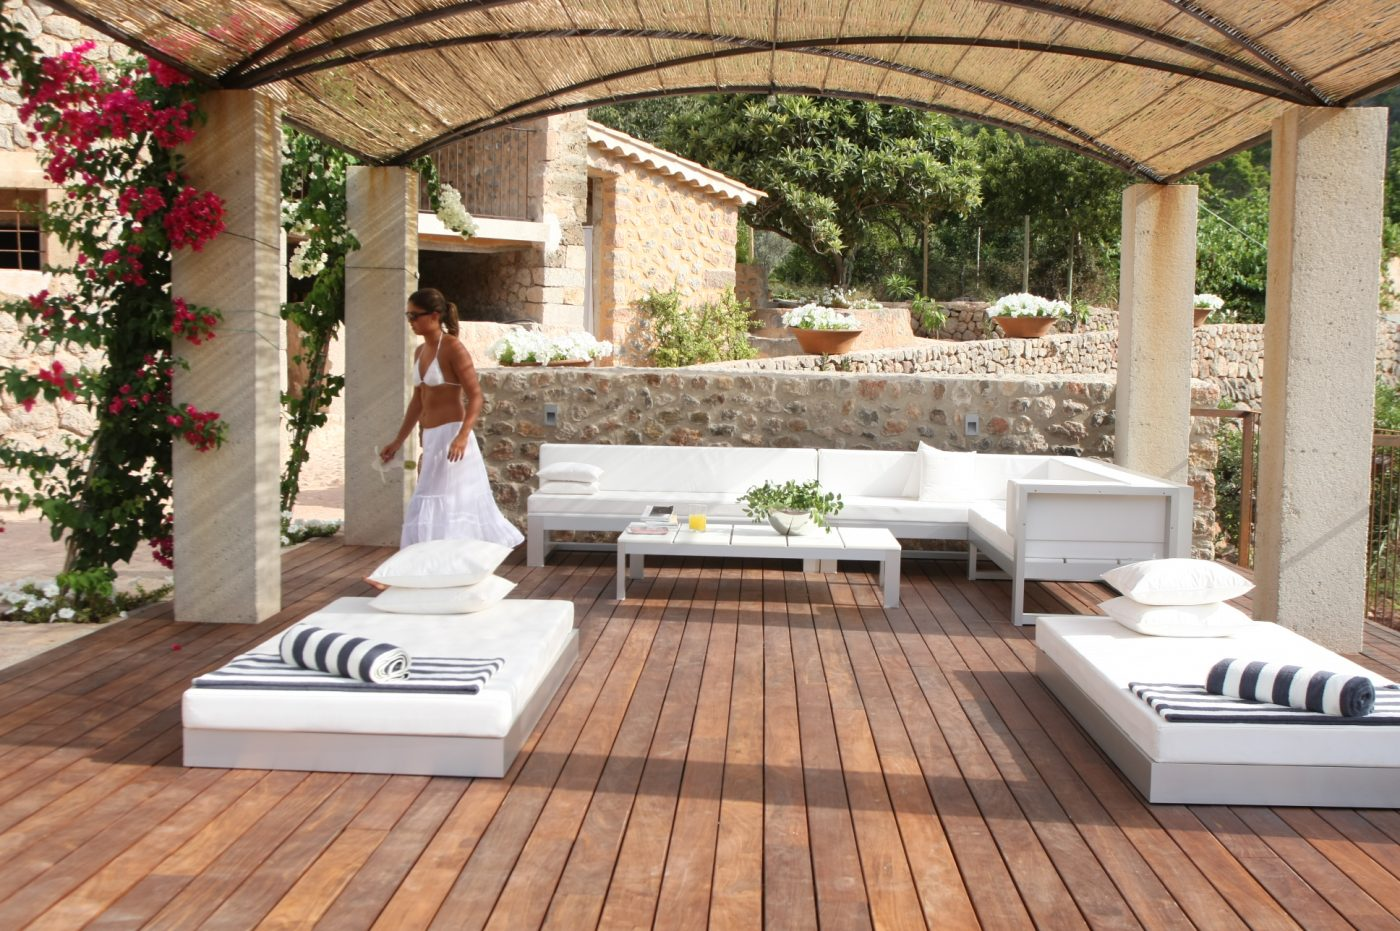 Lemon orchard estate a glorious luxury villa in mallorca for Ideas decoracion terrazas exteriores